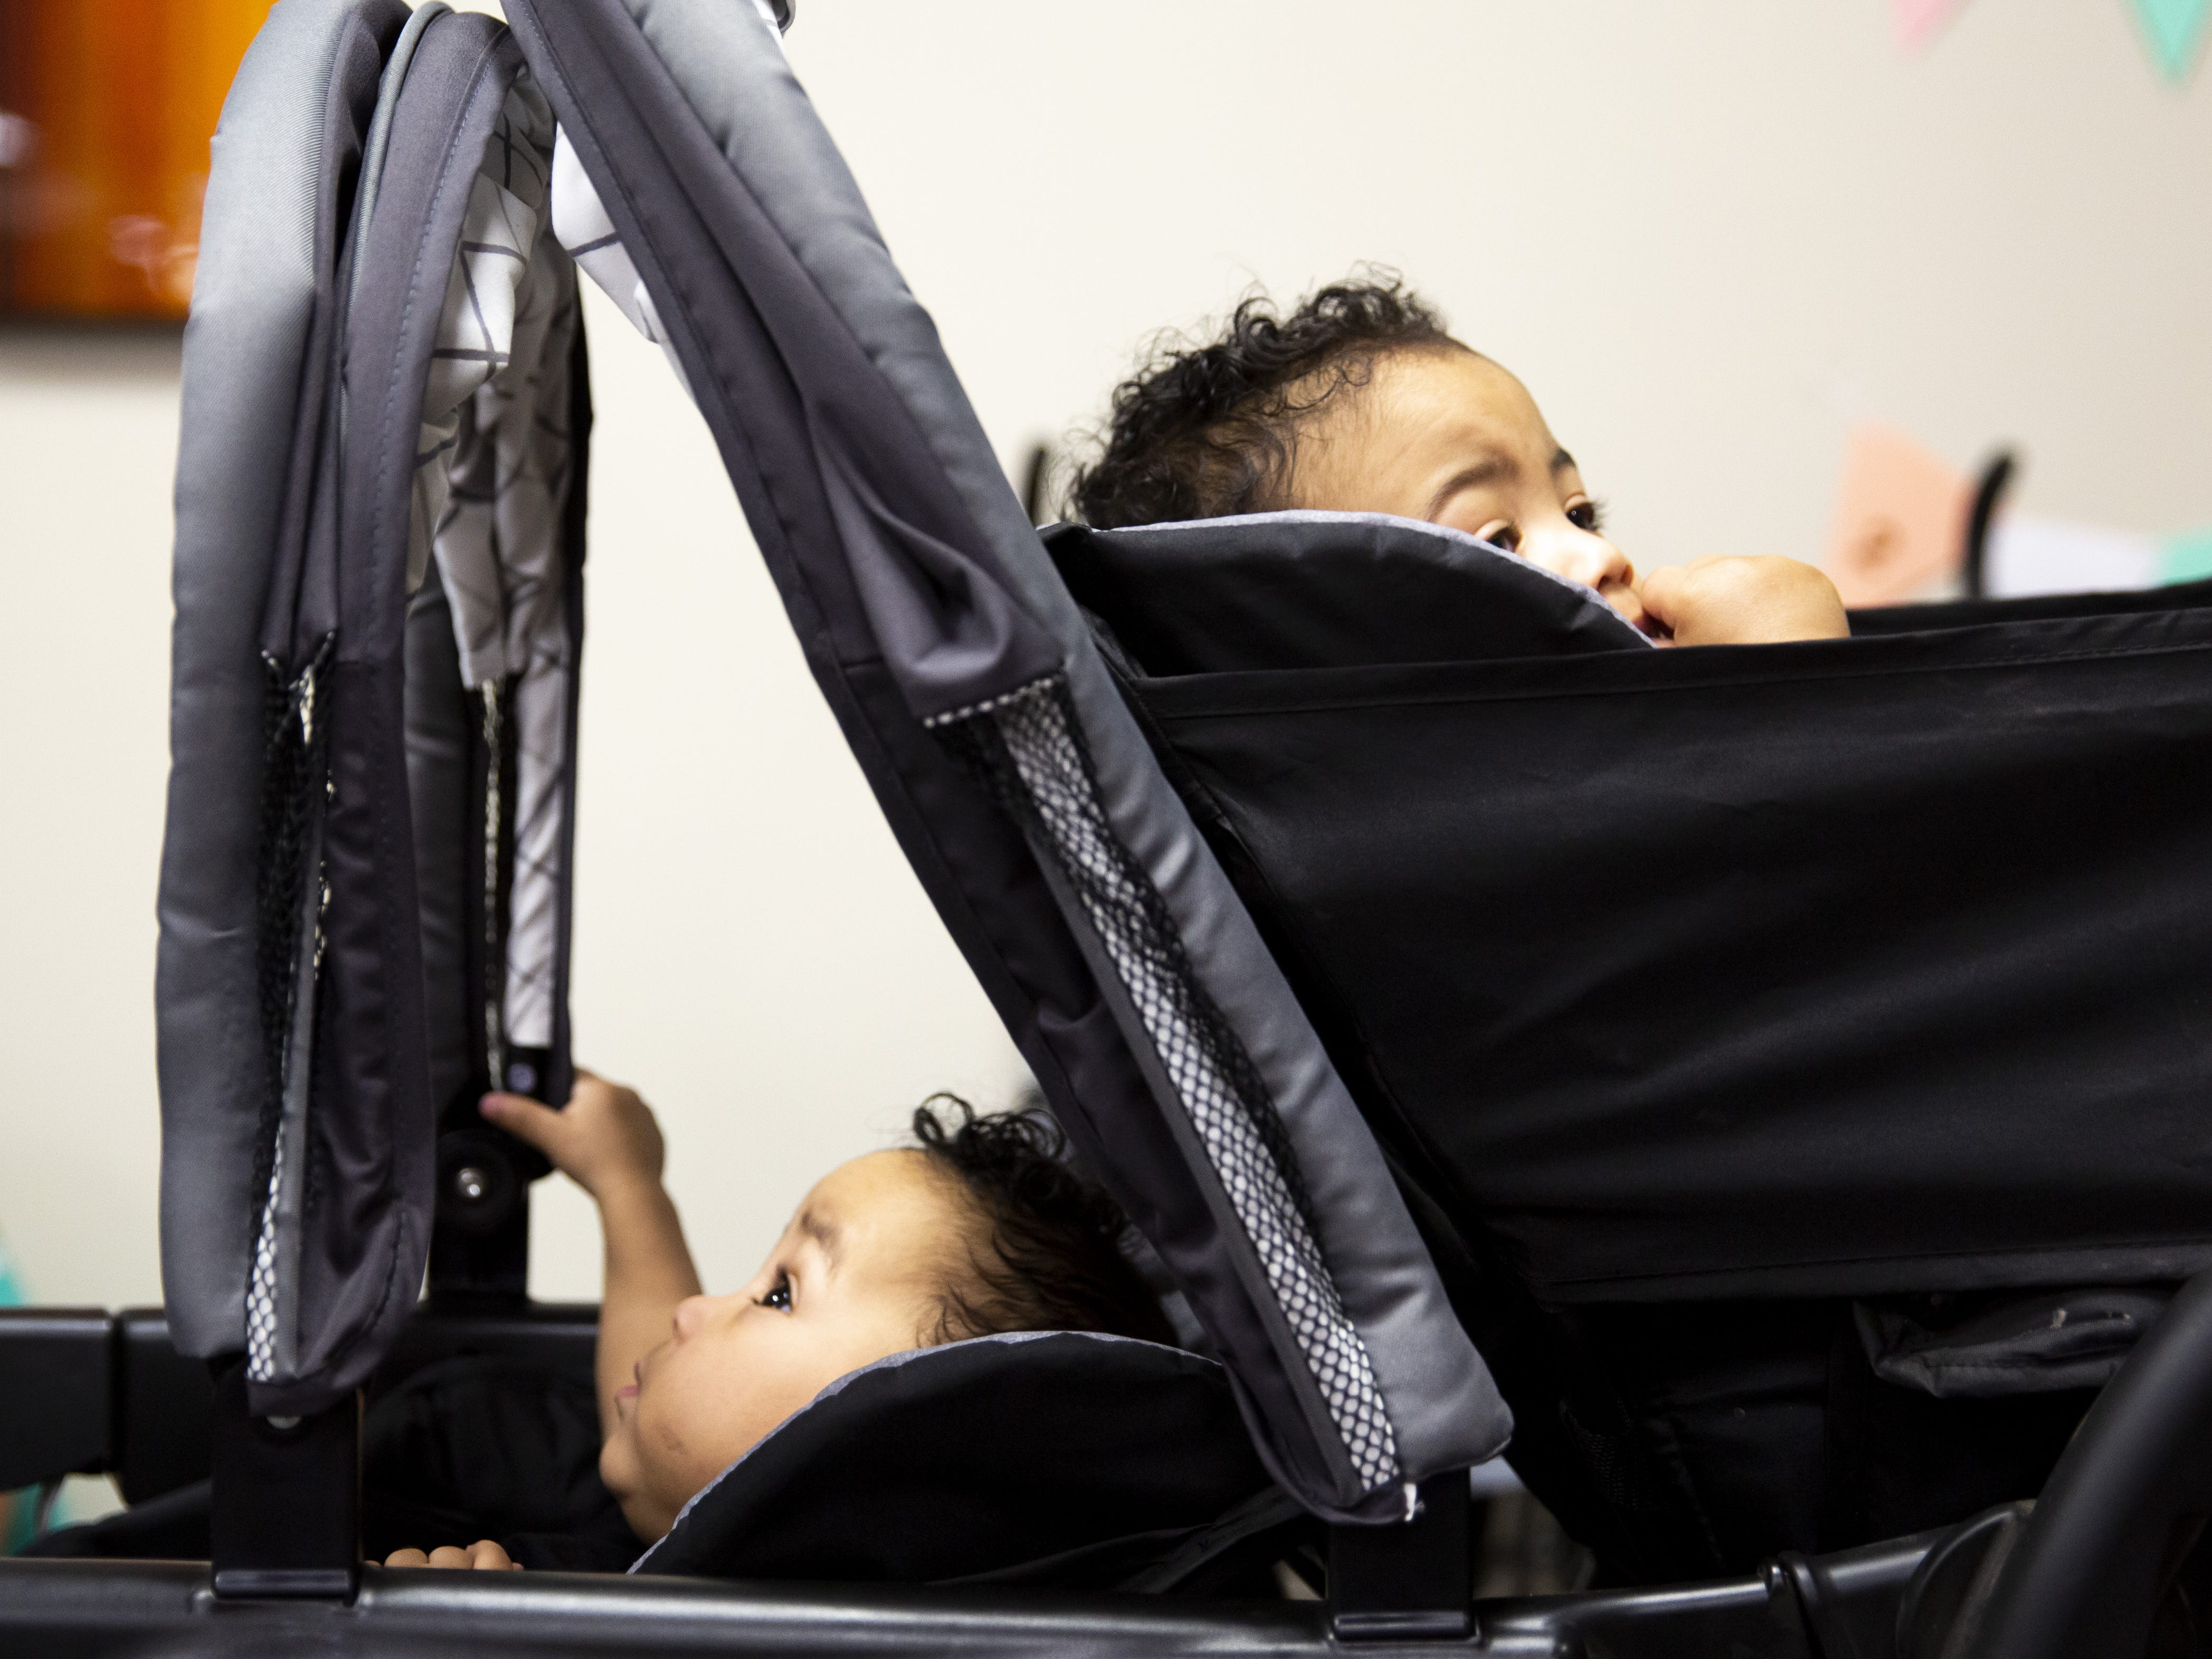 Twins Zandyr, bottom, and Zaidyn, top, peer out of their stroller at the Preemie NICU Reunion at Banner University Medical Center on April 13, 2019. The twins were born on Valentine's Day and spent time in the hospital's NICU.